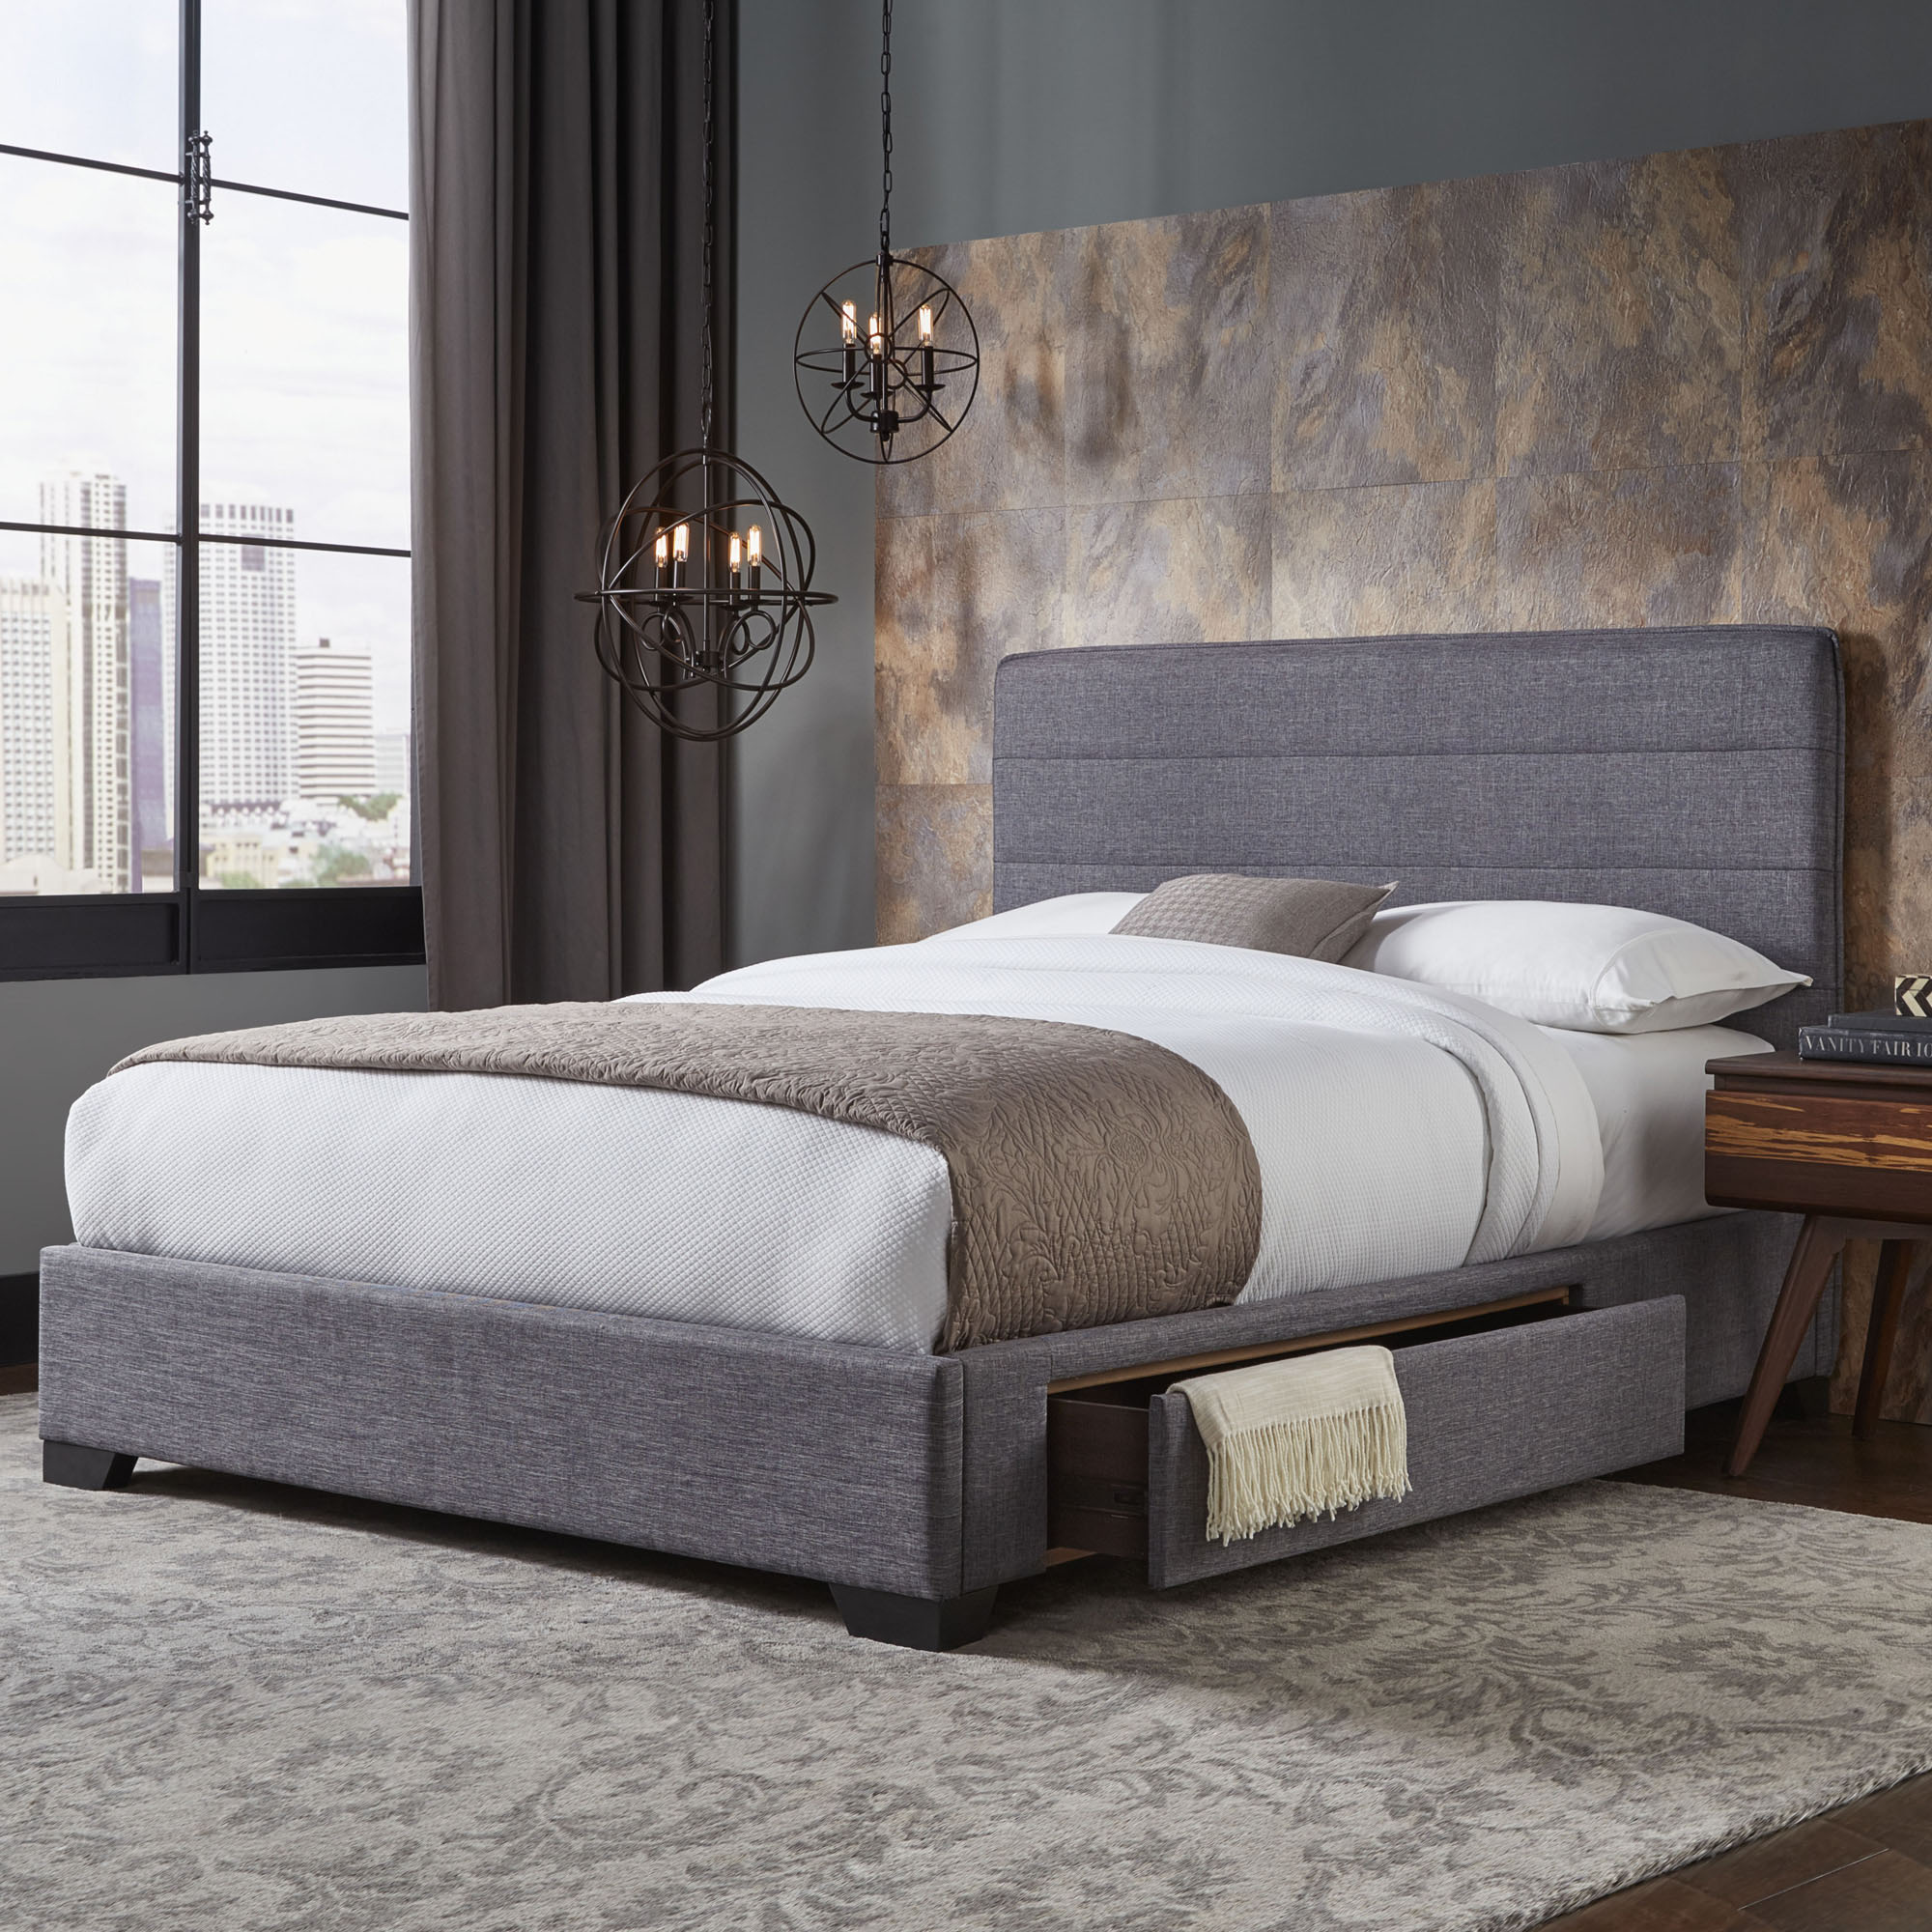 Oliver Storage Bed With Upholstered Frame And Single Side Drawer, Gravel  Grey Finish, Queen